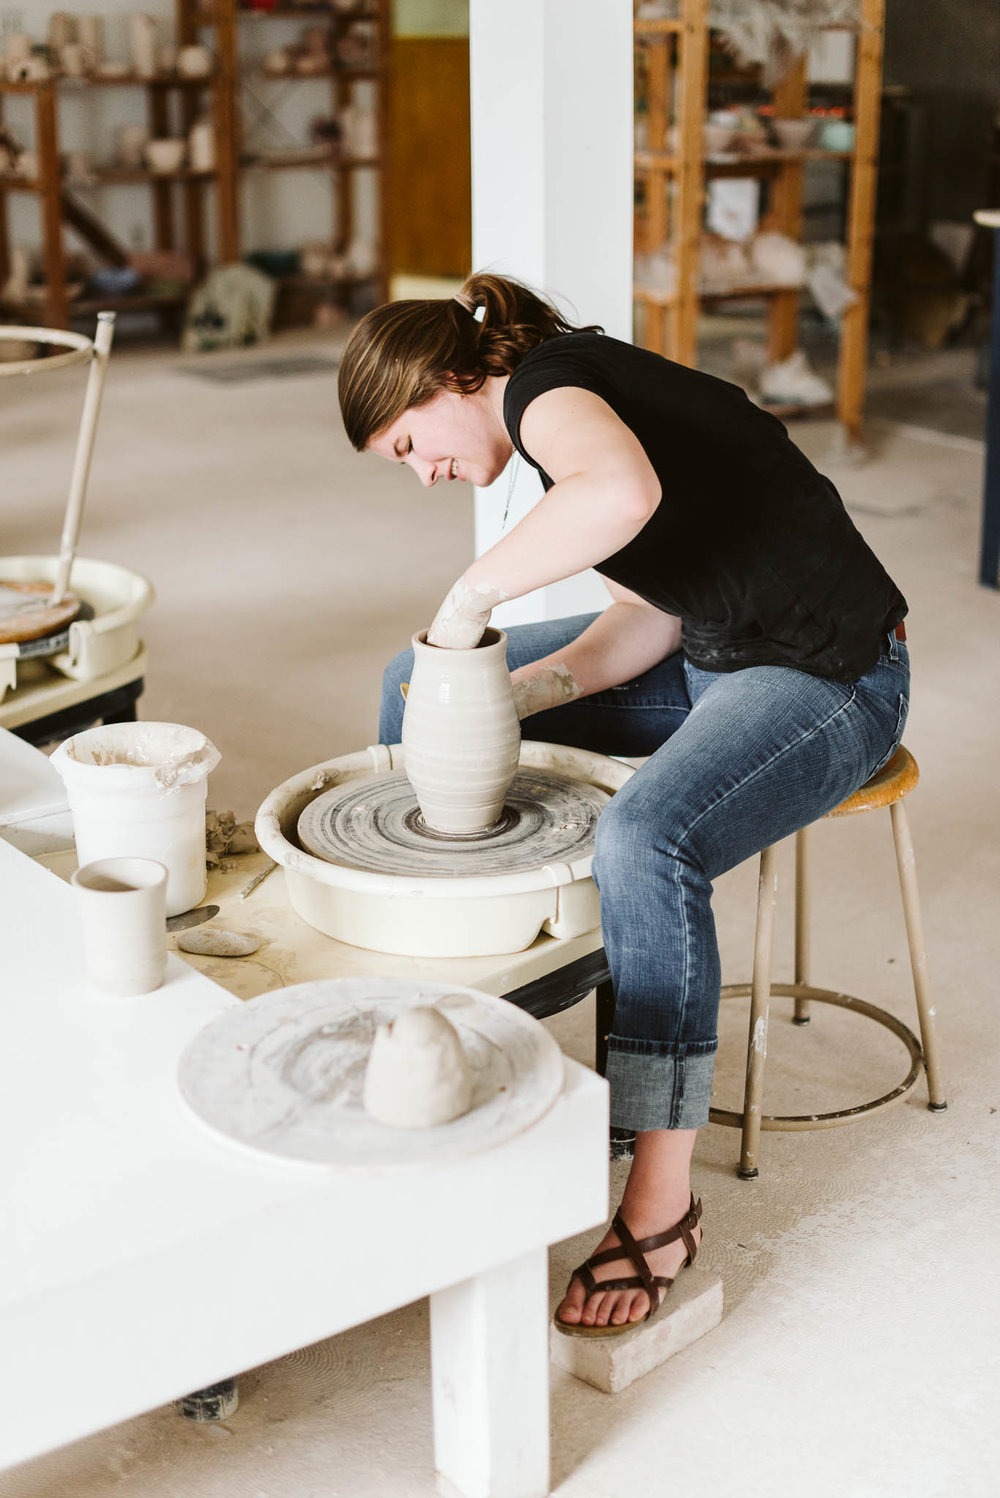 Kirsten-Smith-Photography-Reagan-Ashley-Pottery147.jpg